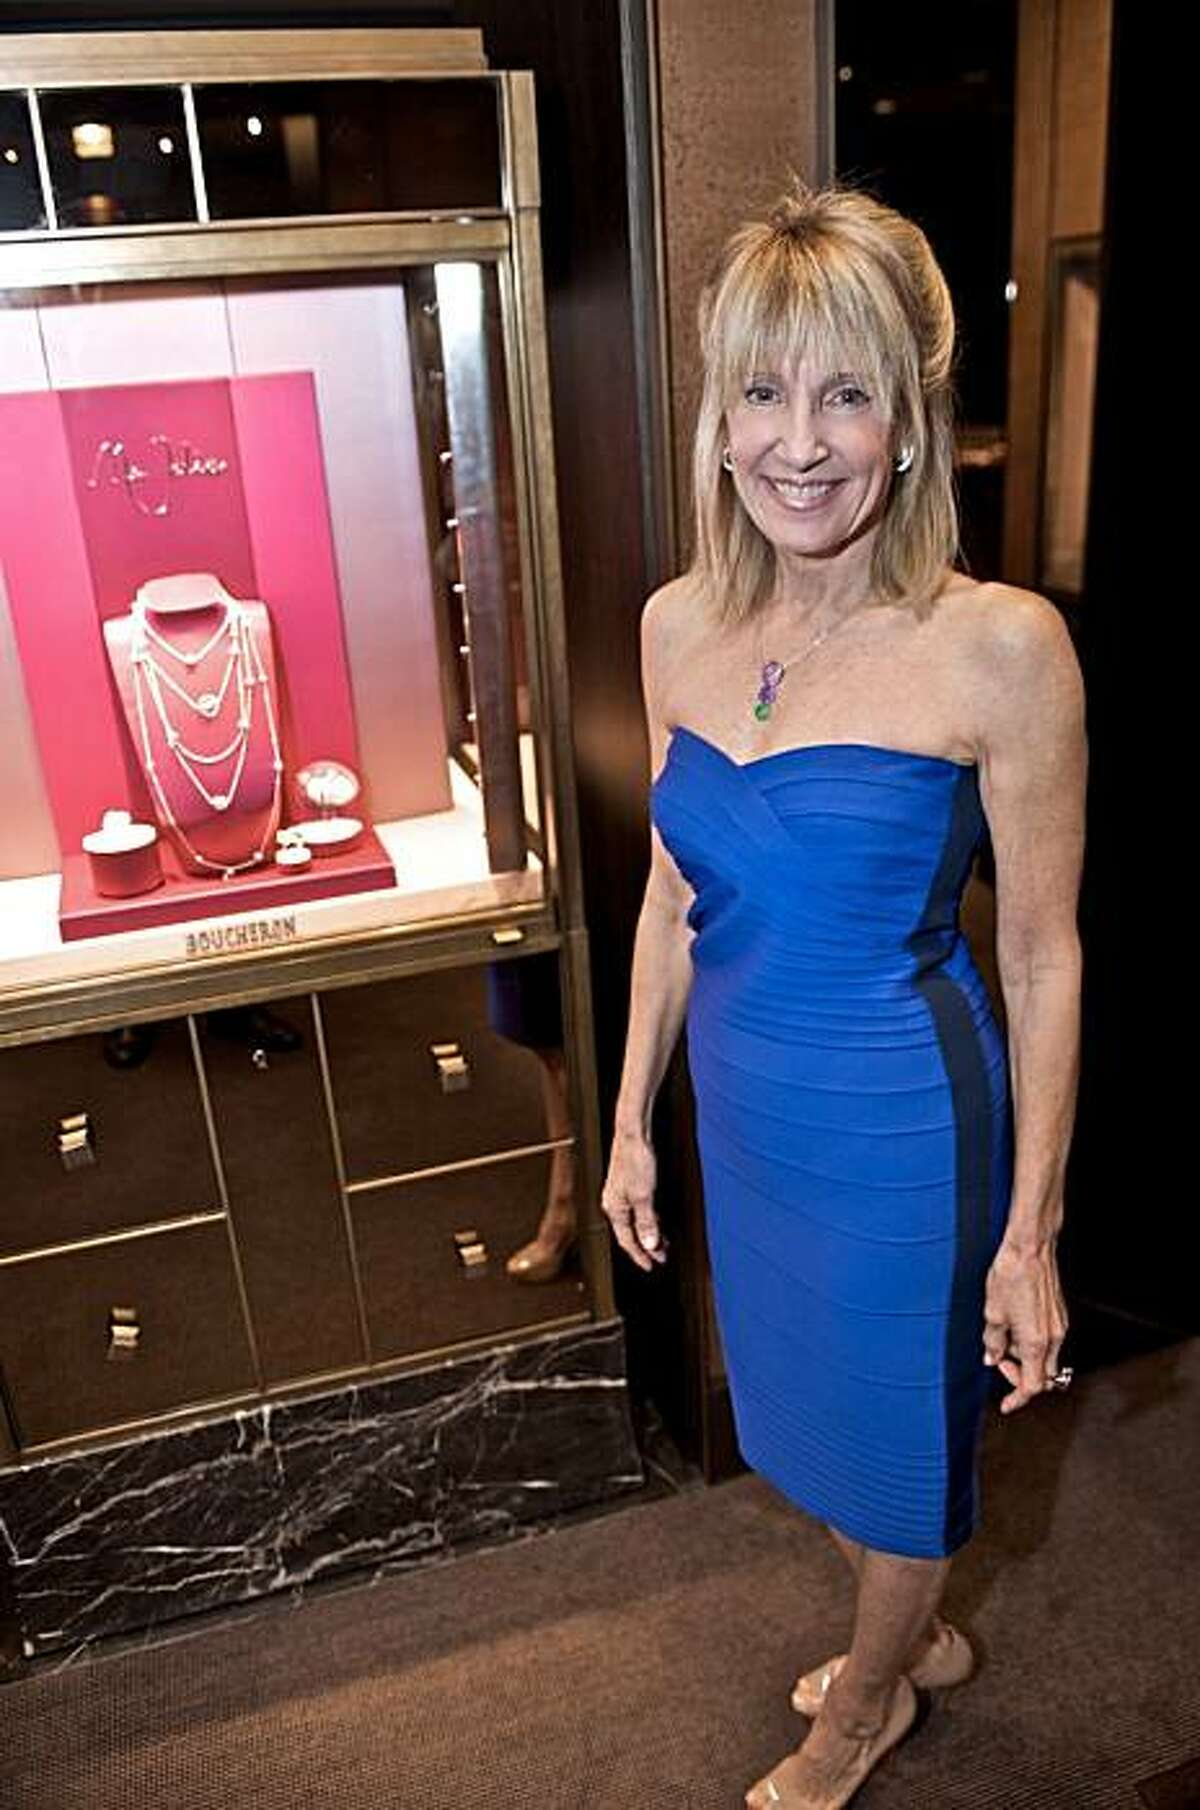 At the Boucheron jewelry boutique on Dec. 14, 2010, clothing designer Julie Panciroli debuted her latest line of made-to-measure upscale apparel. Here we see friend and stylist Sandy Mandel. Sandy Mandel